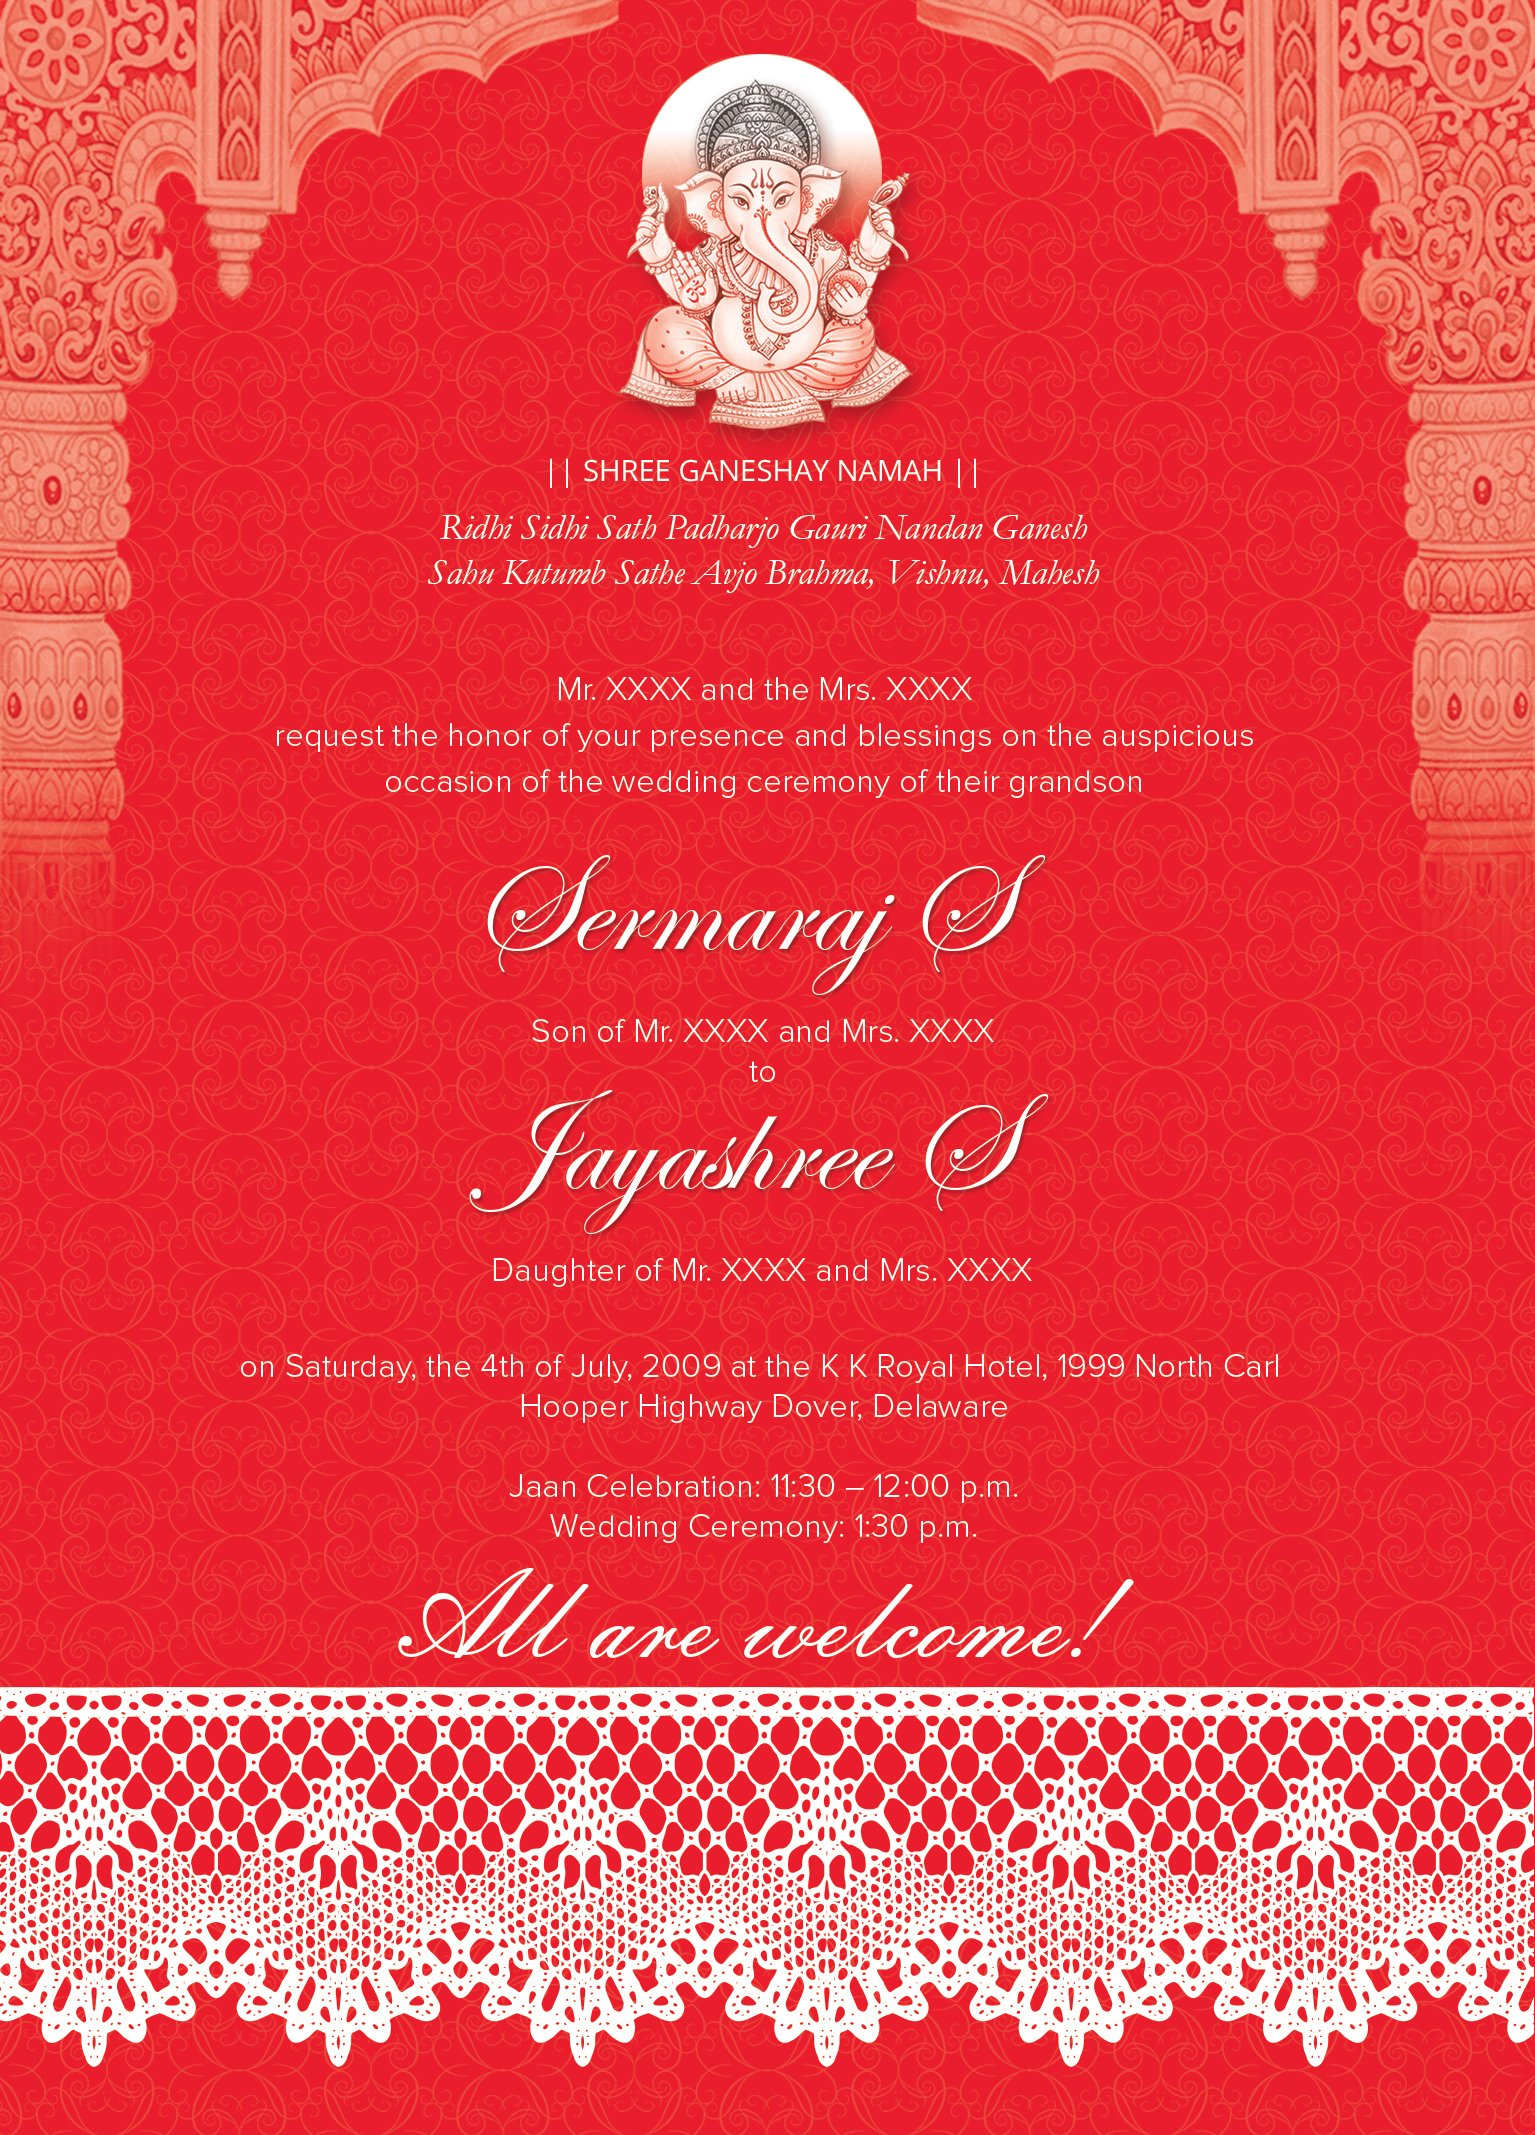 indian wedding card 01 3 colors invitation templates creative market - Indian Wedding Invitation